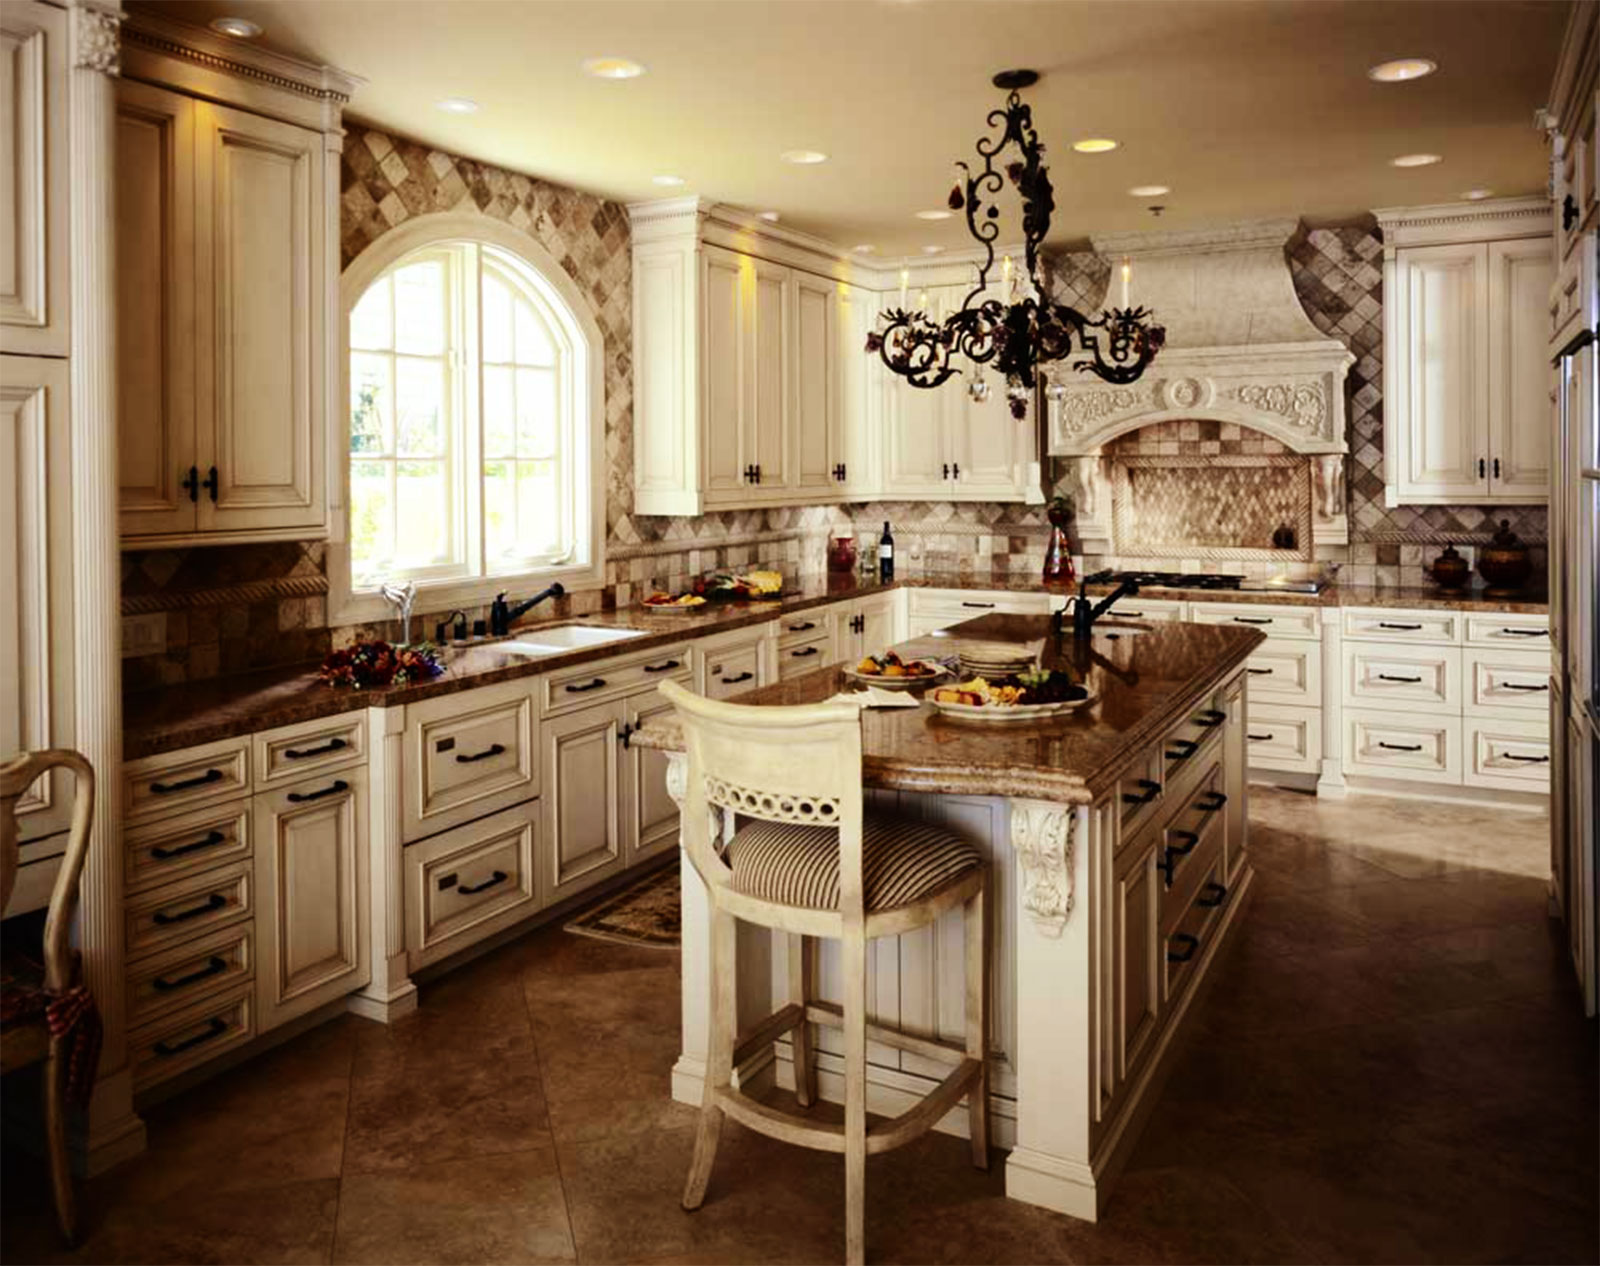 rustic kitchen cabinets rustic kitchen cabinets rustic kitchen cabinets